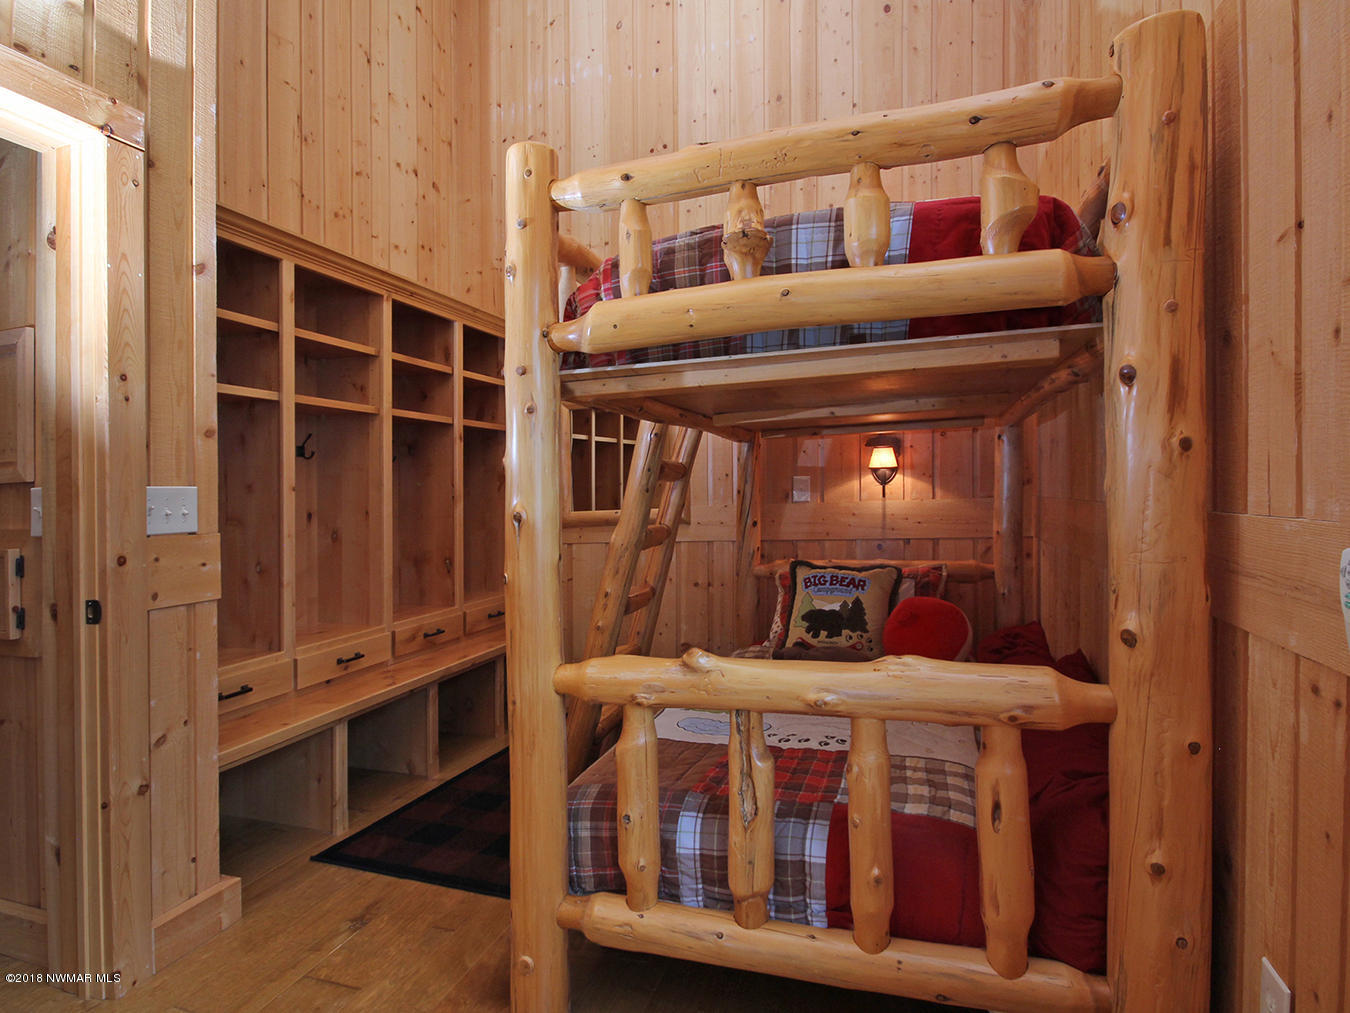 The bunk room with cubbies for storage